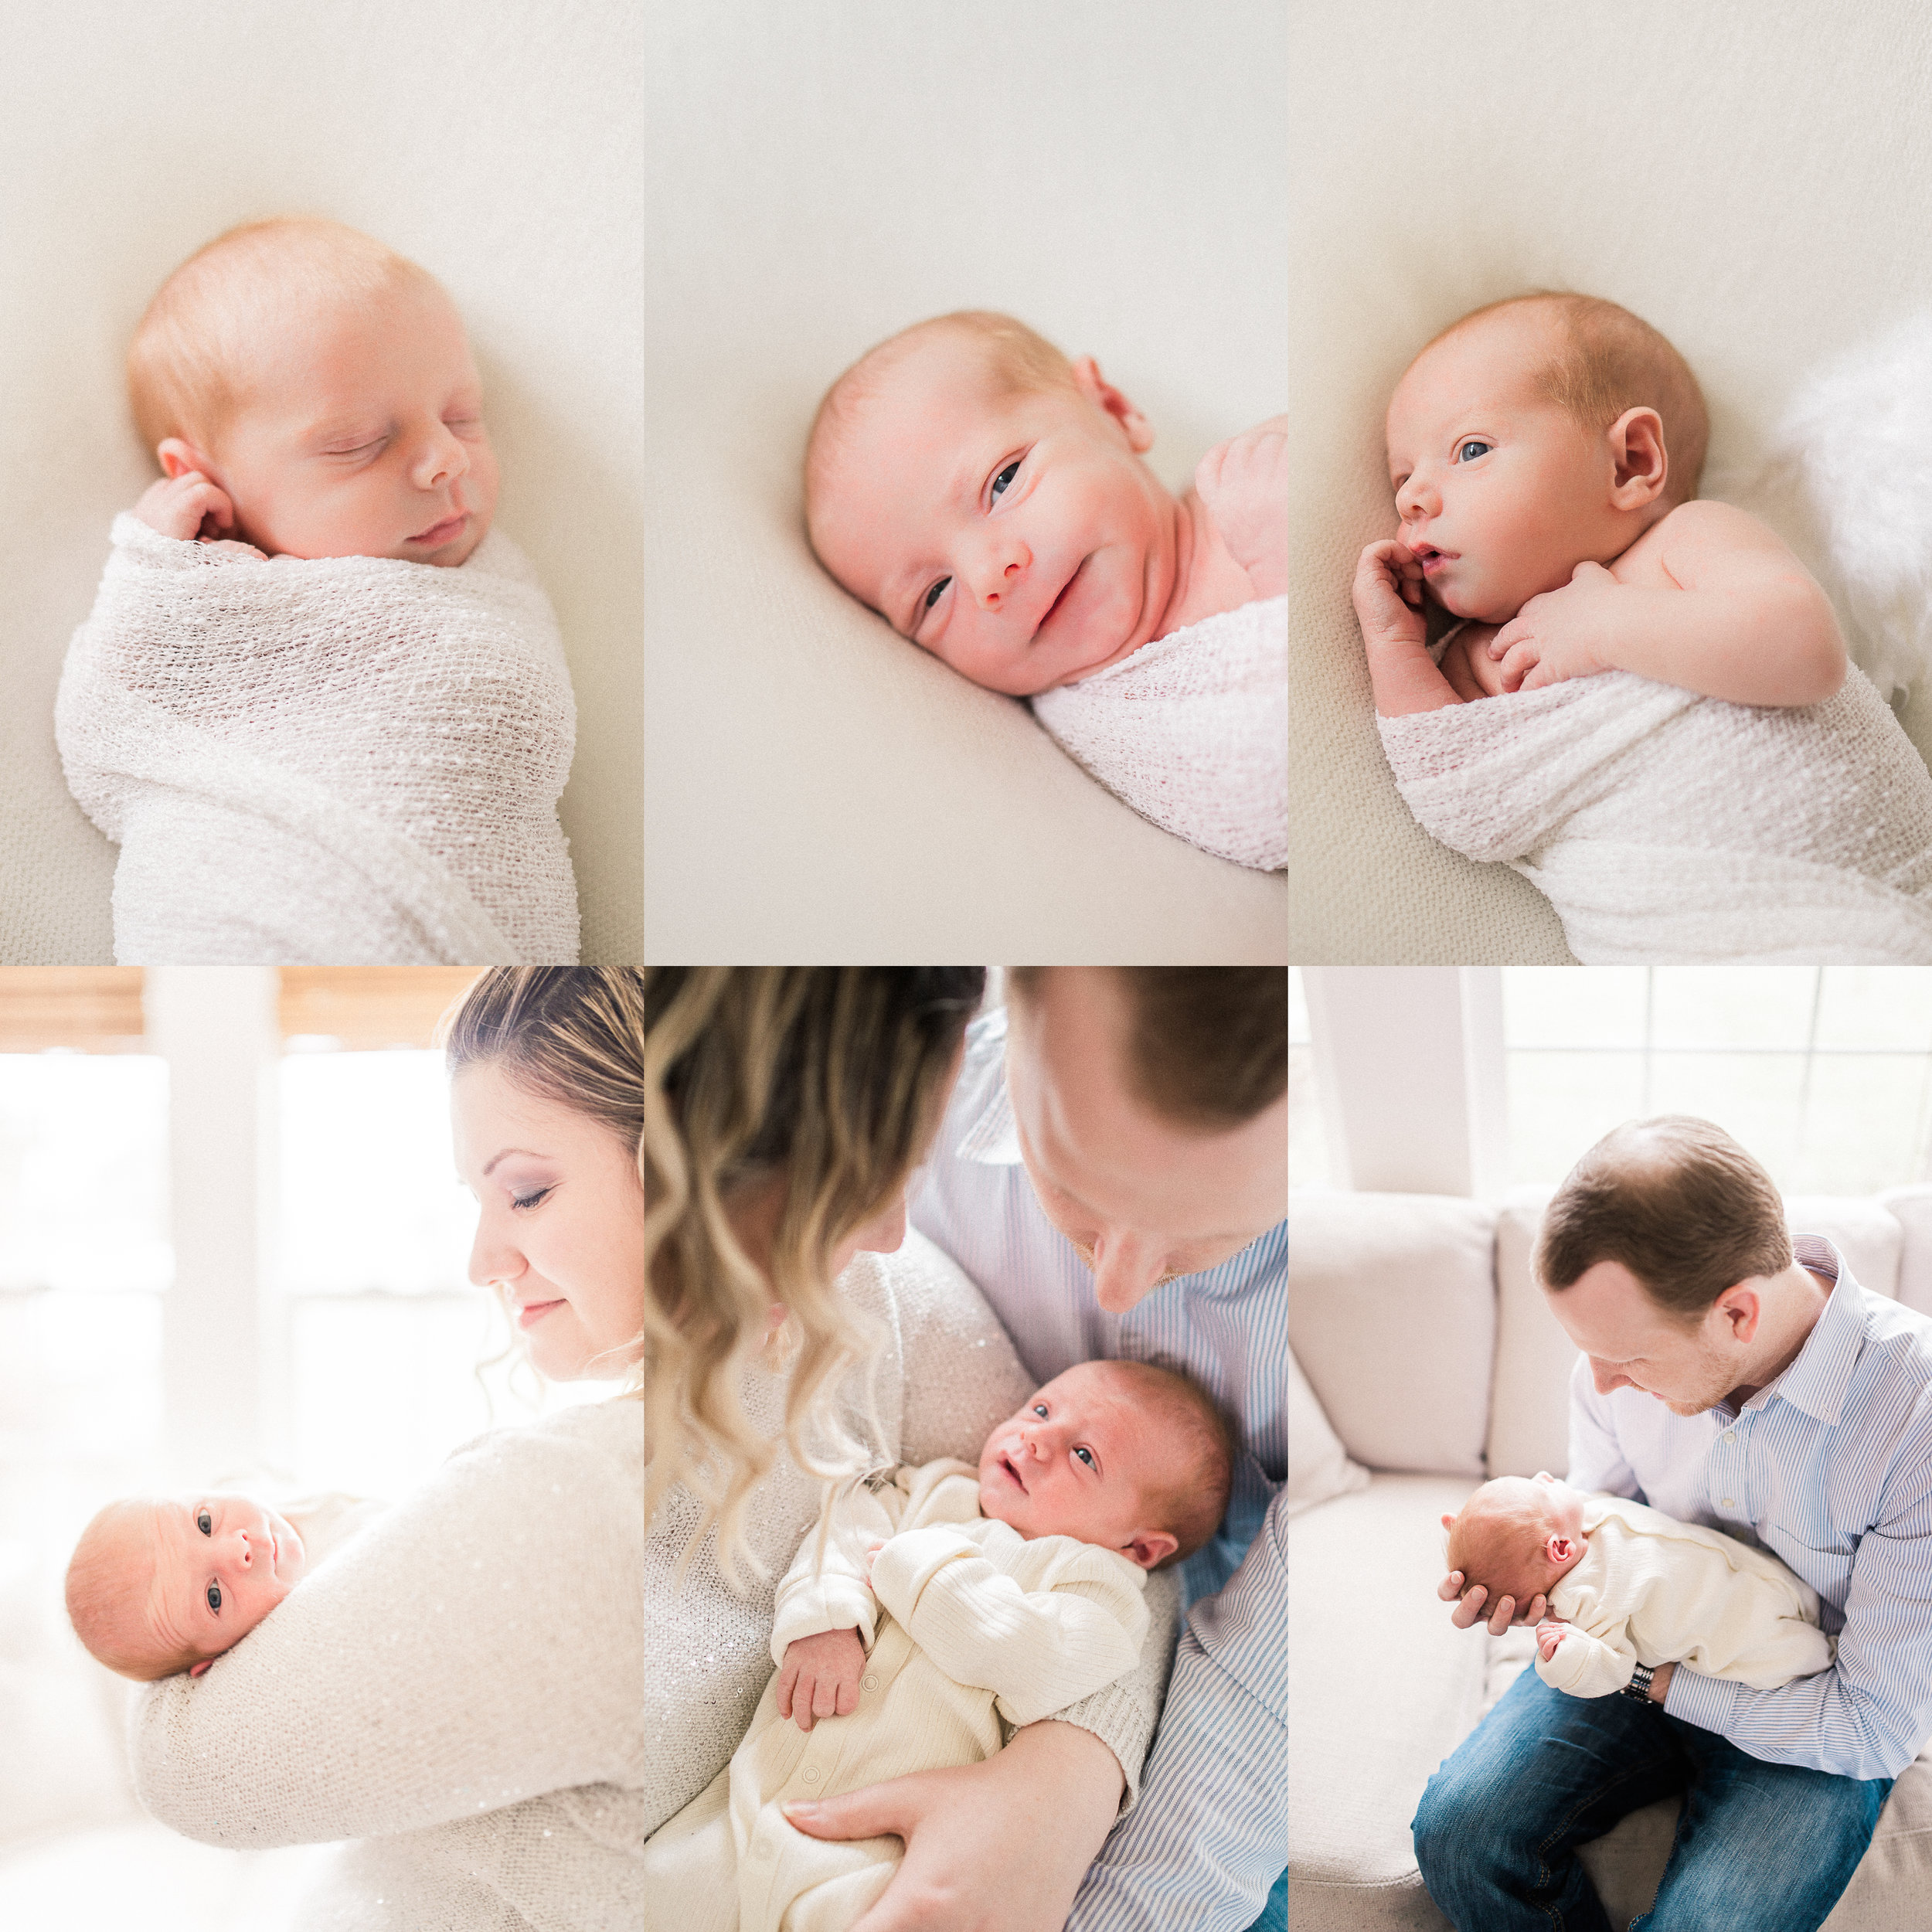 Christian | Handsome and Natural Newborn Photography | Noblesville, IN